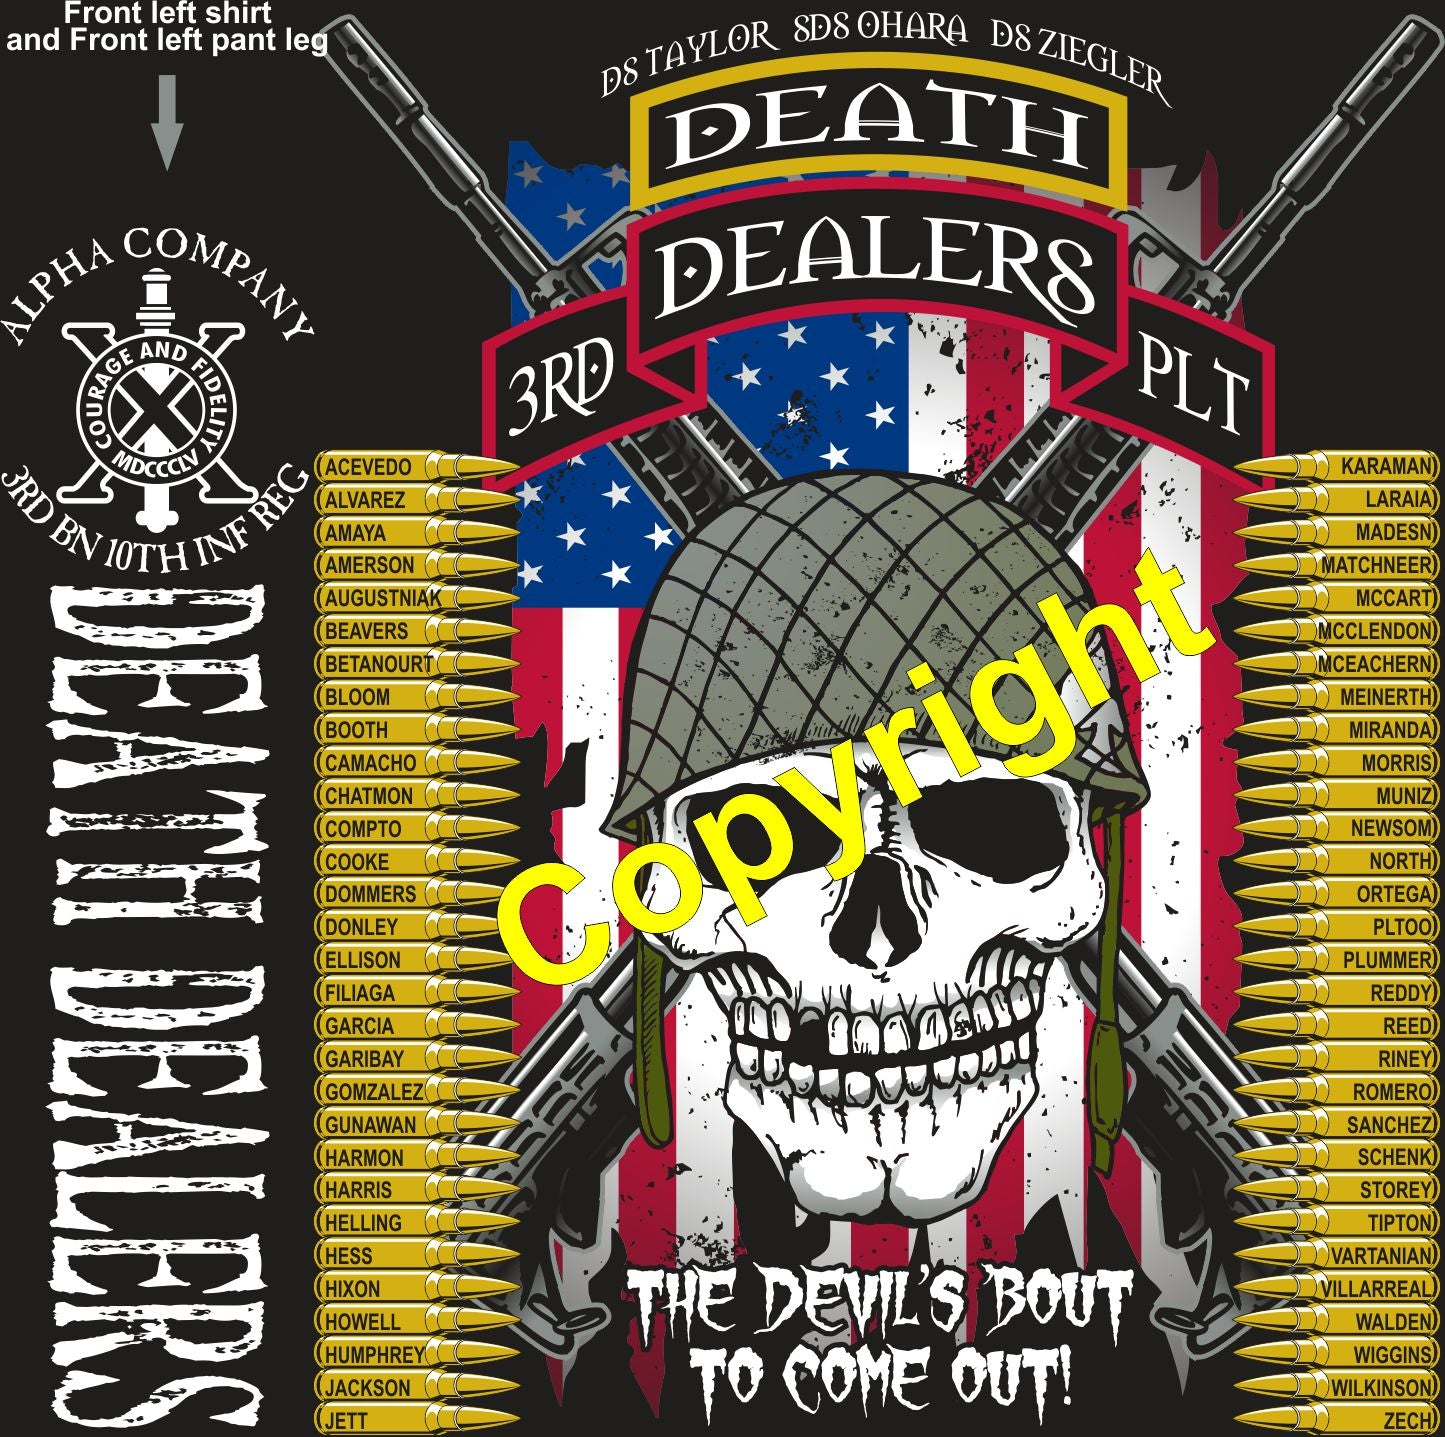 ALPHA 310 DEATH DEALERS GRADUATING DAY 11-29-2018 digital